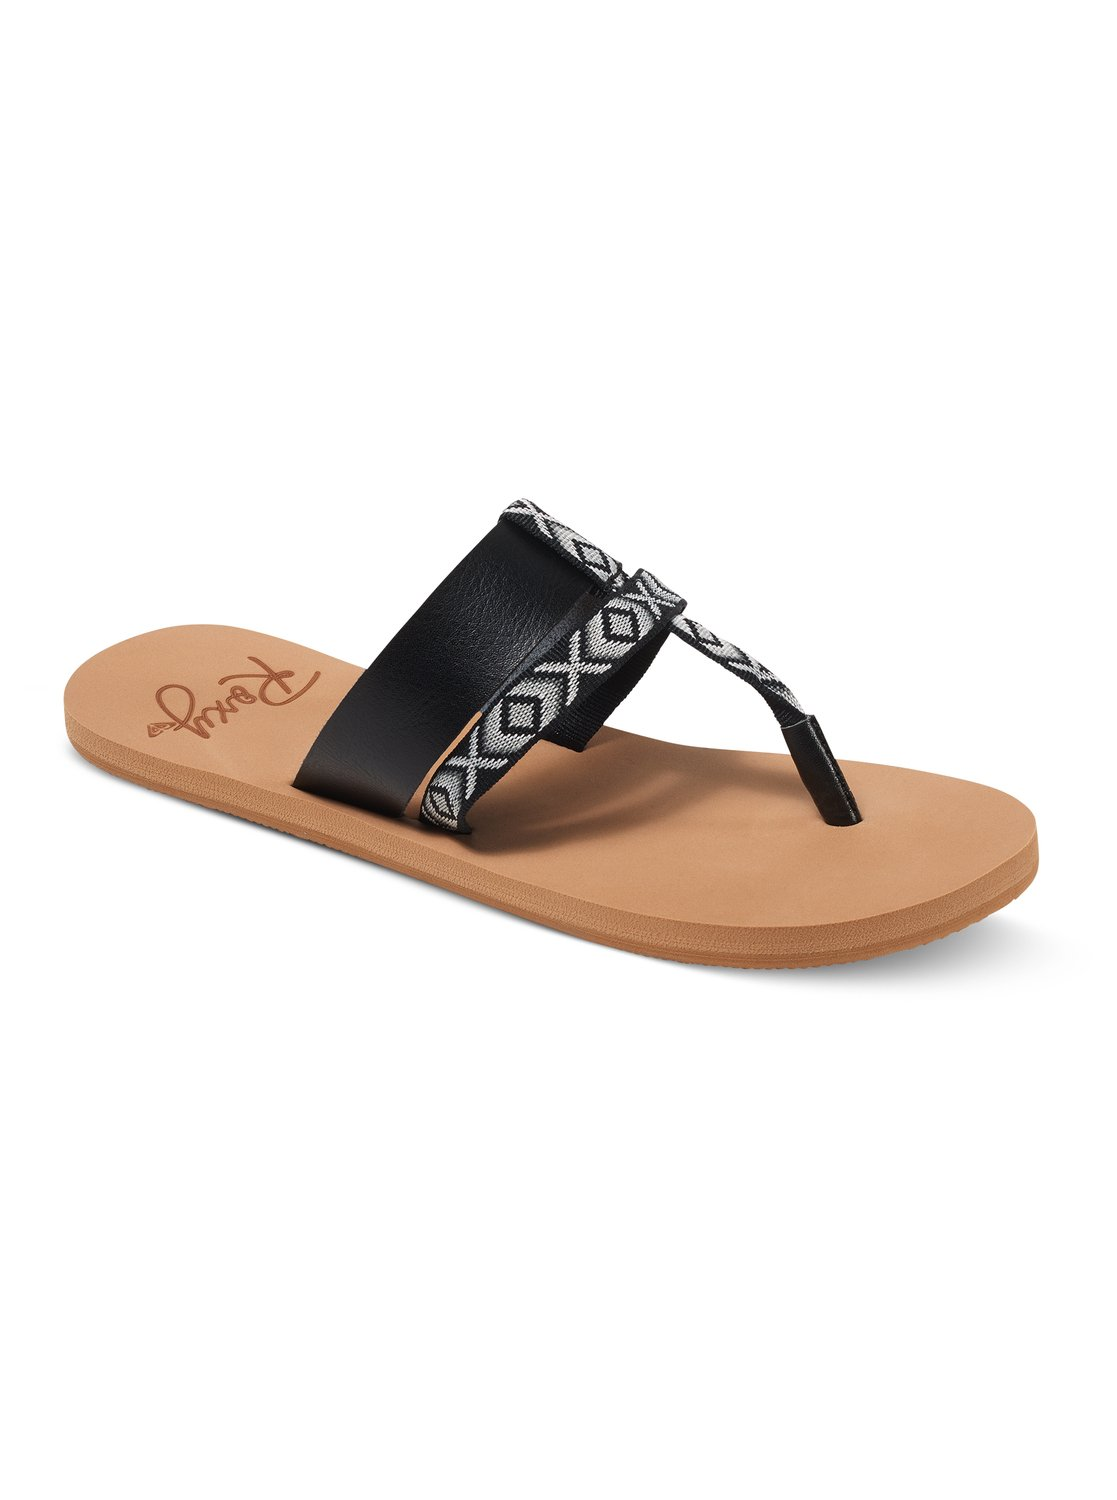 Roxy KAHULA Black - Chaussures Tongs Femme